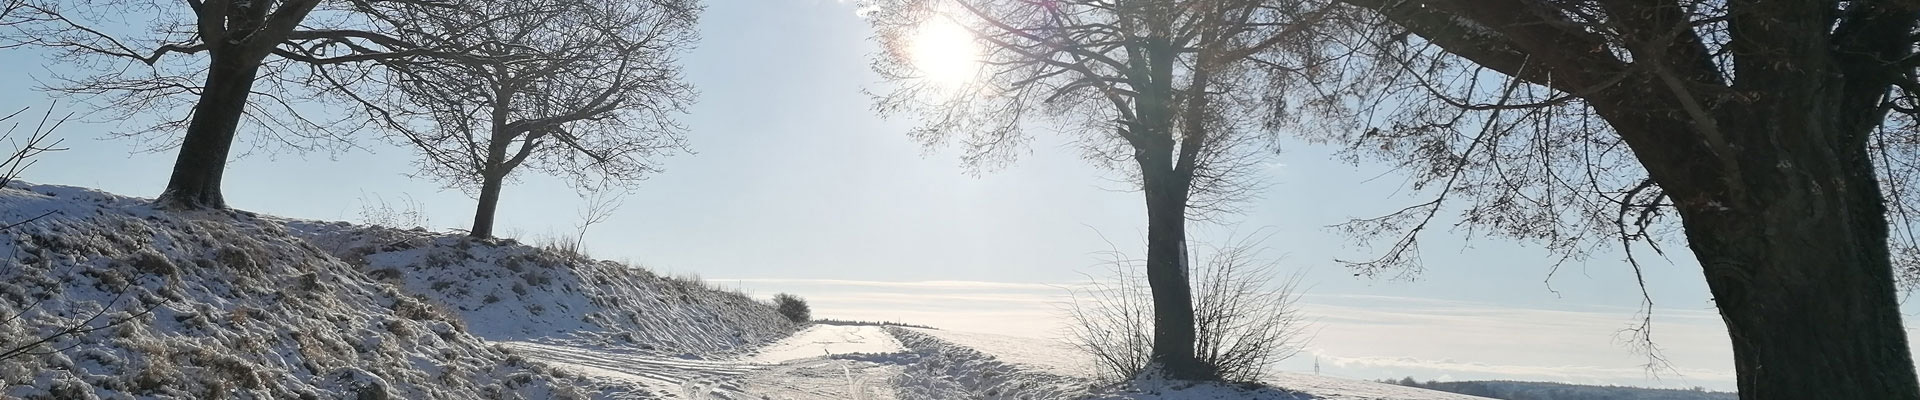 Evi Mittenberger – Header Winterlandschaft Treidelheim Jan. 2021